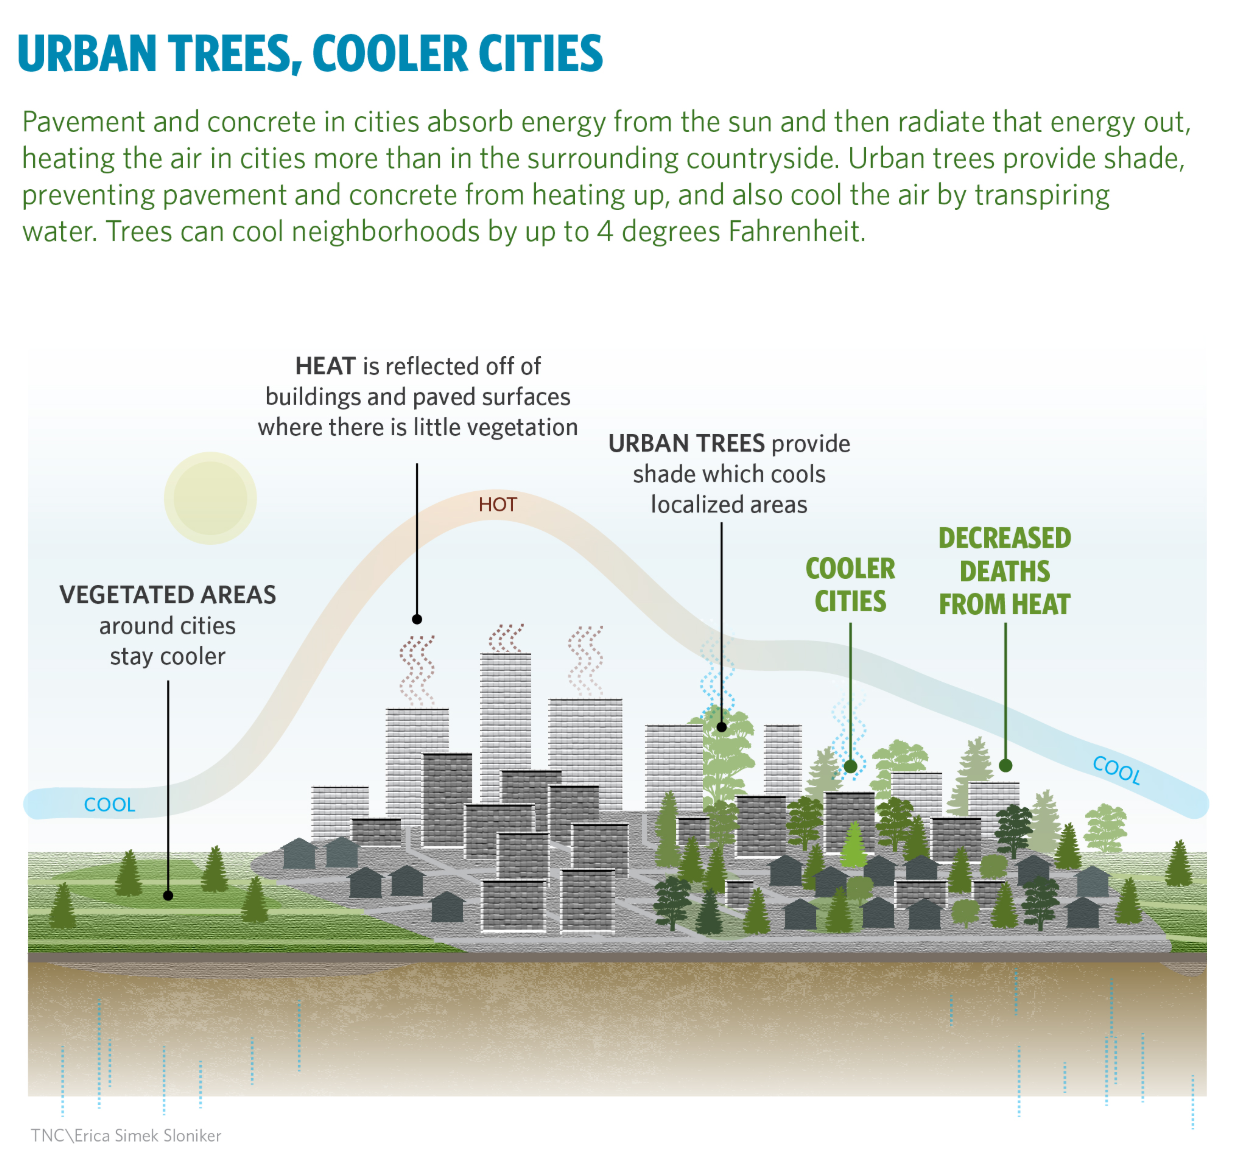 Urban Trees, Cooler Cities